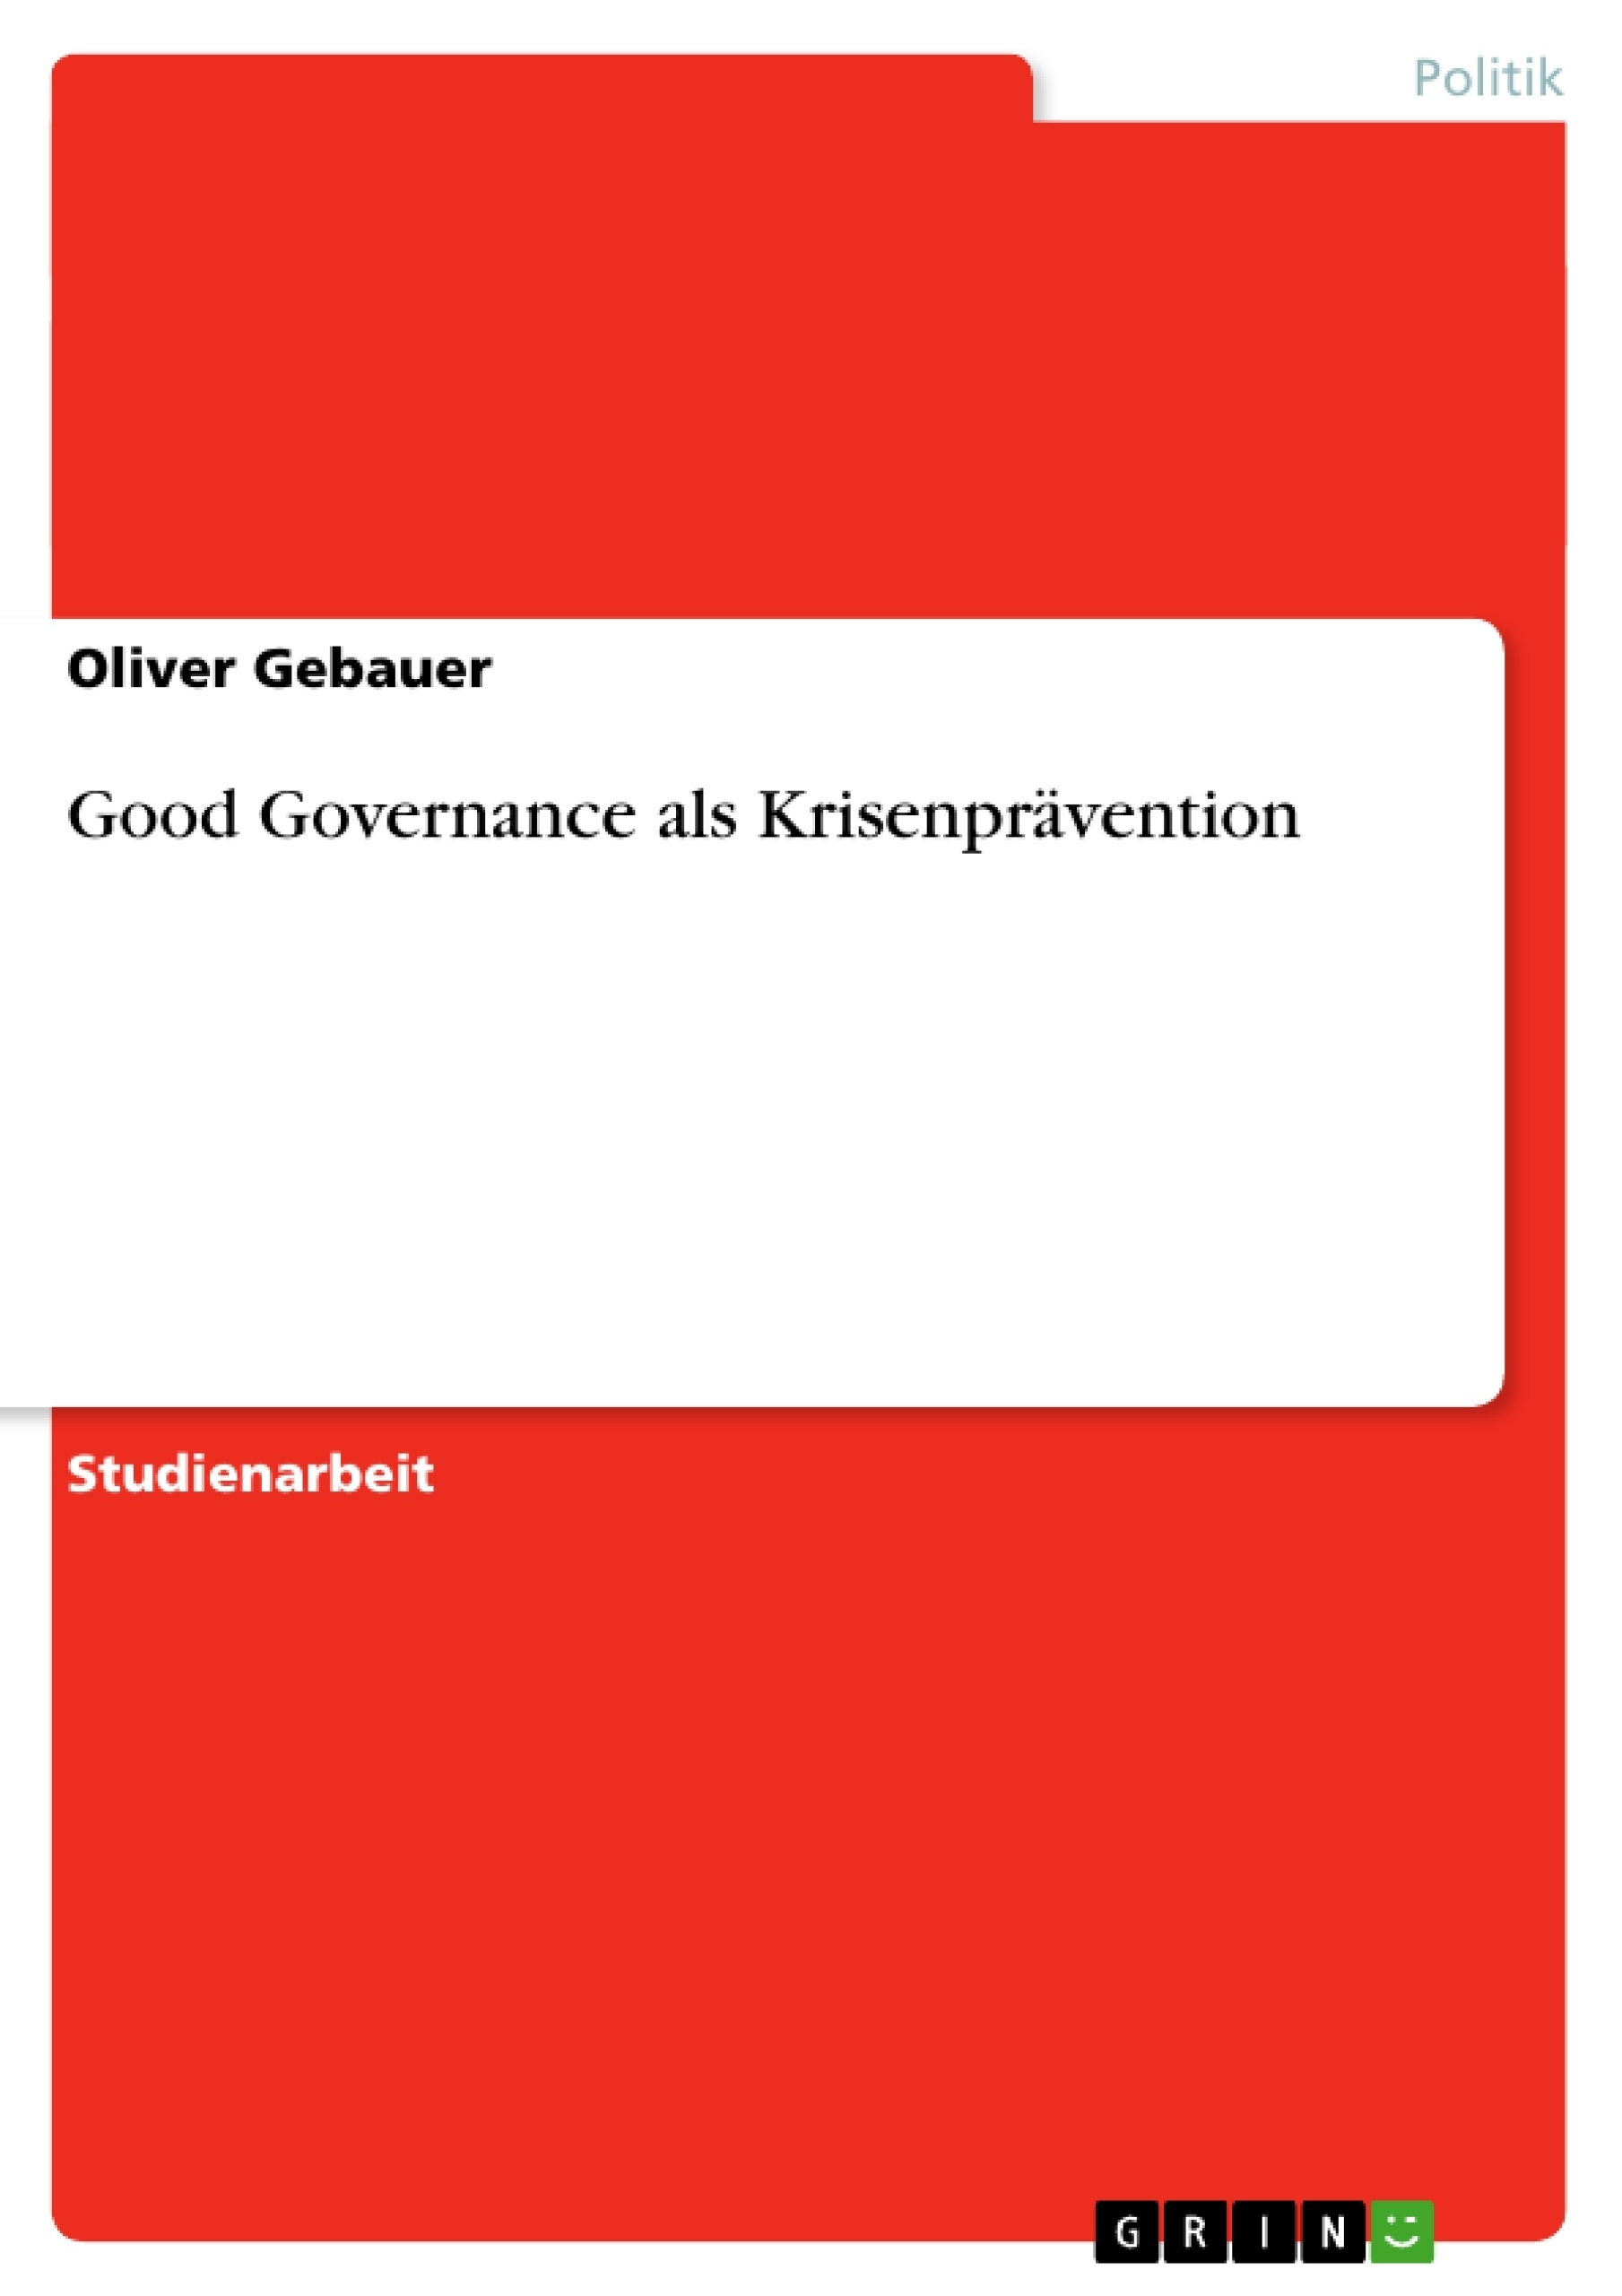 Titel: Good Governance als Krisenprävention